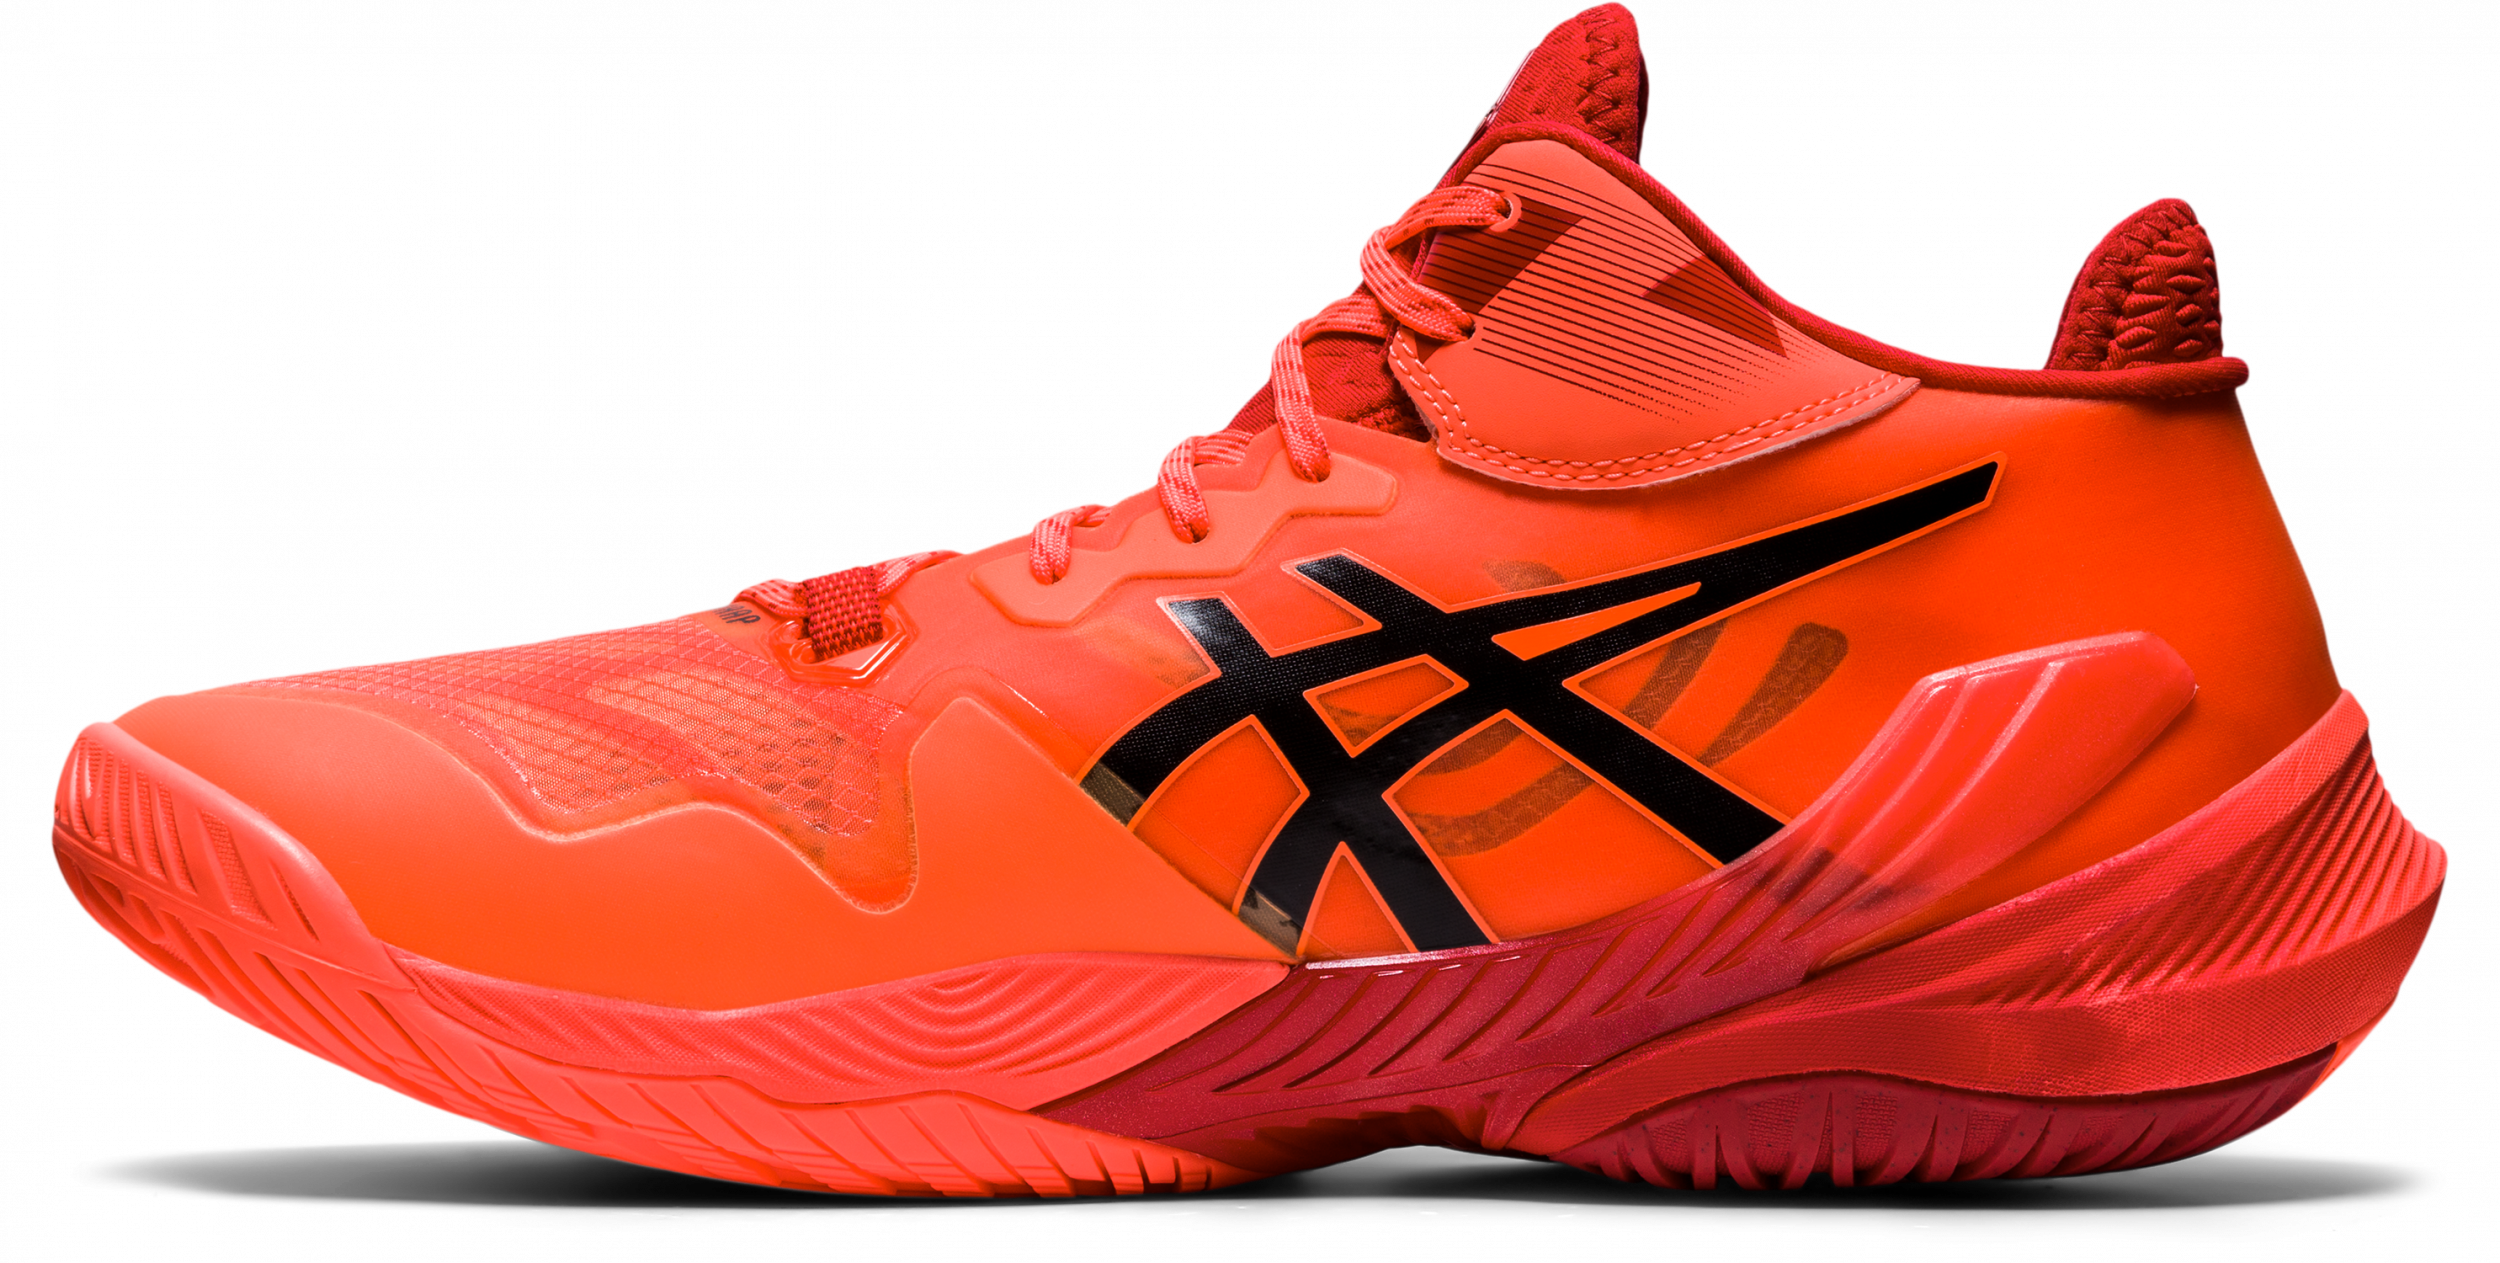 asics-metarise-chaussures-de-volley-2020-volleypack-16